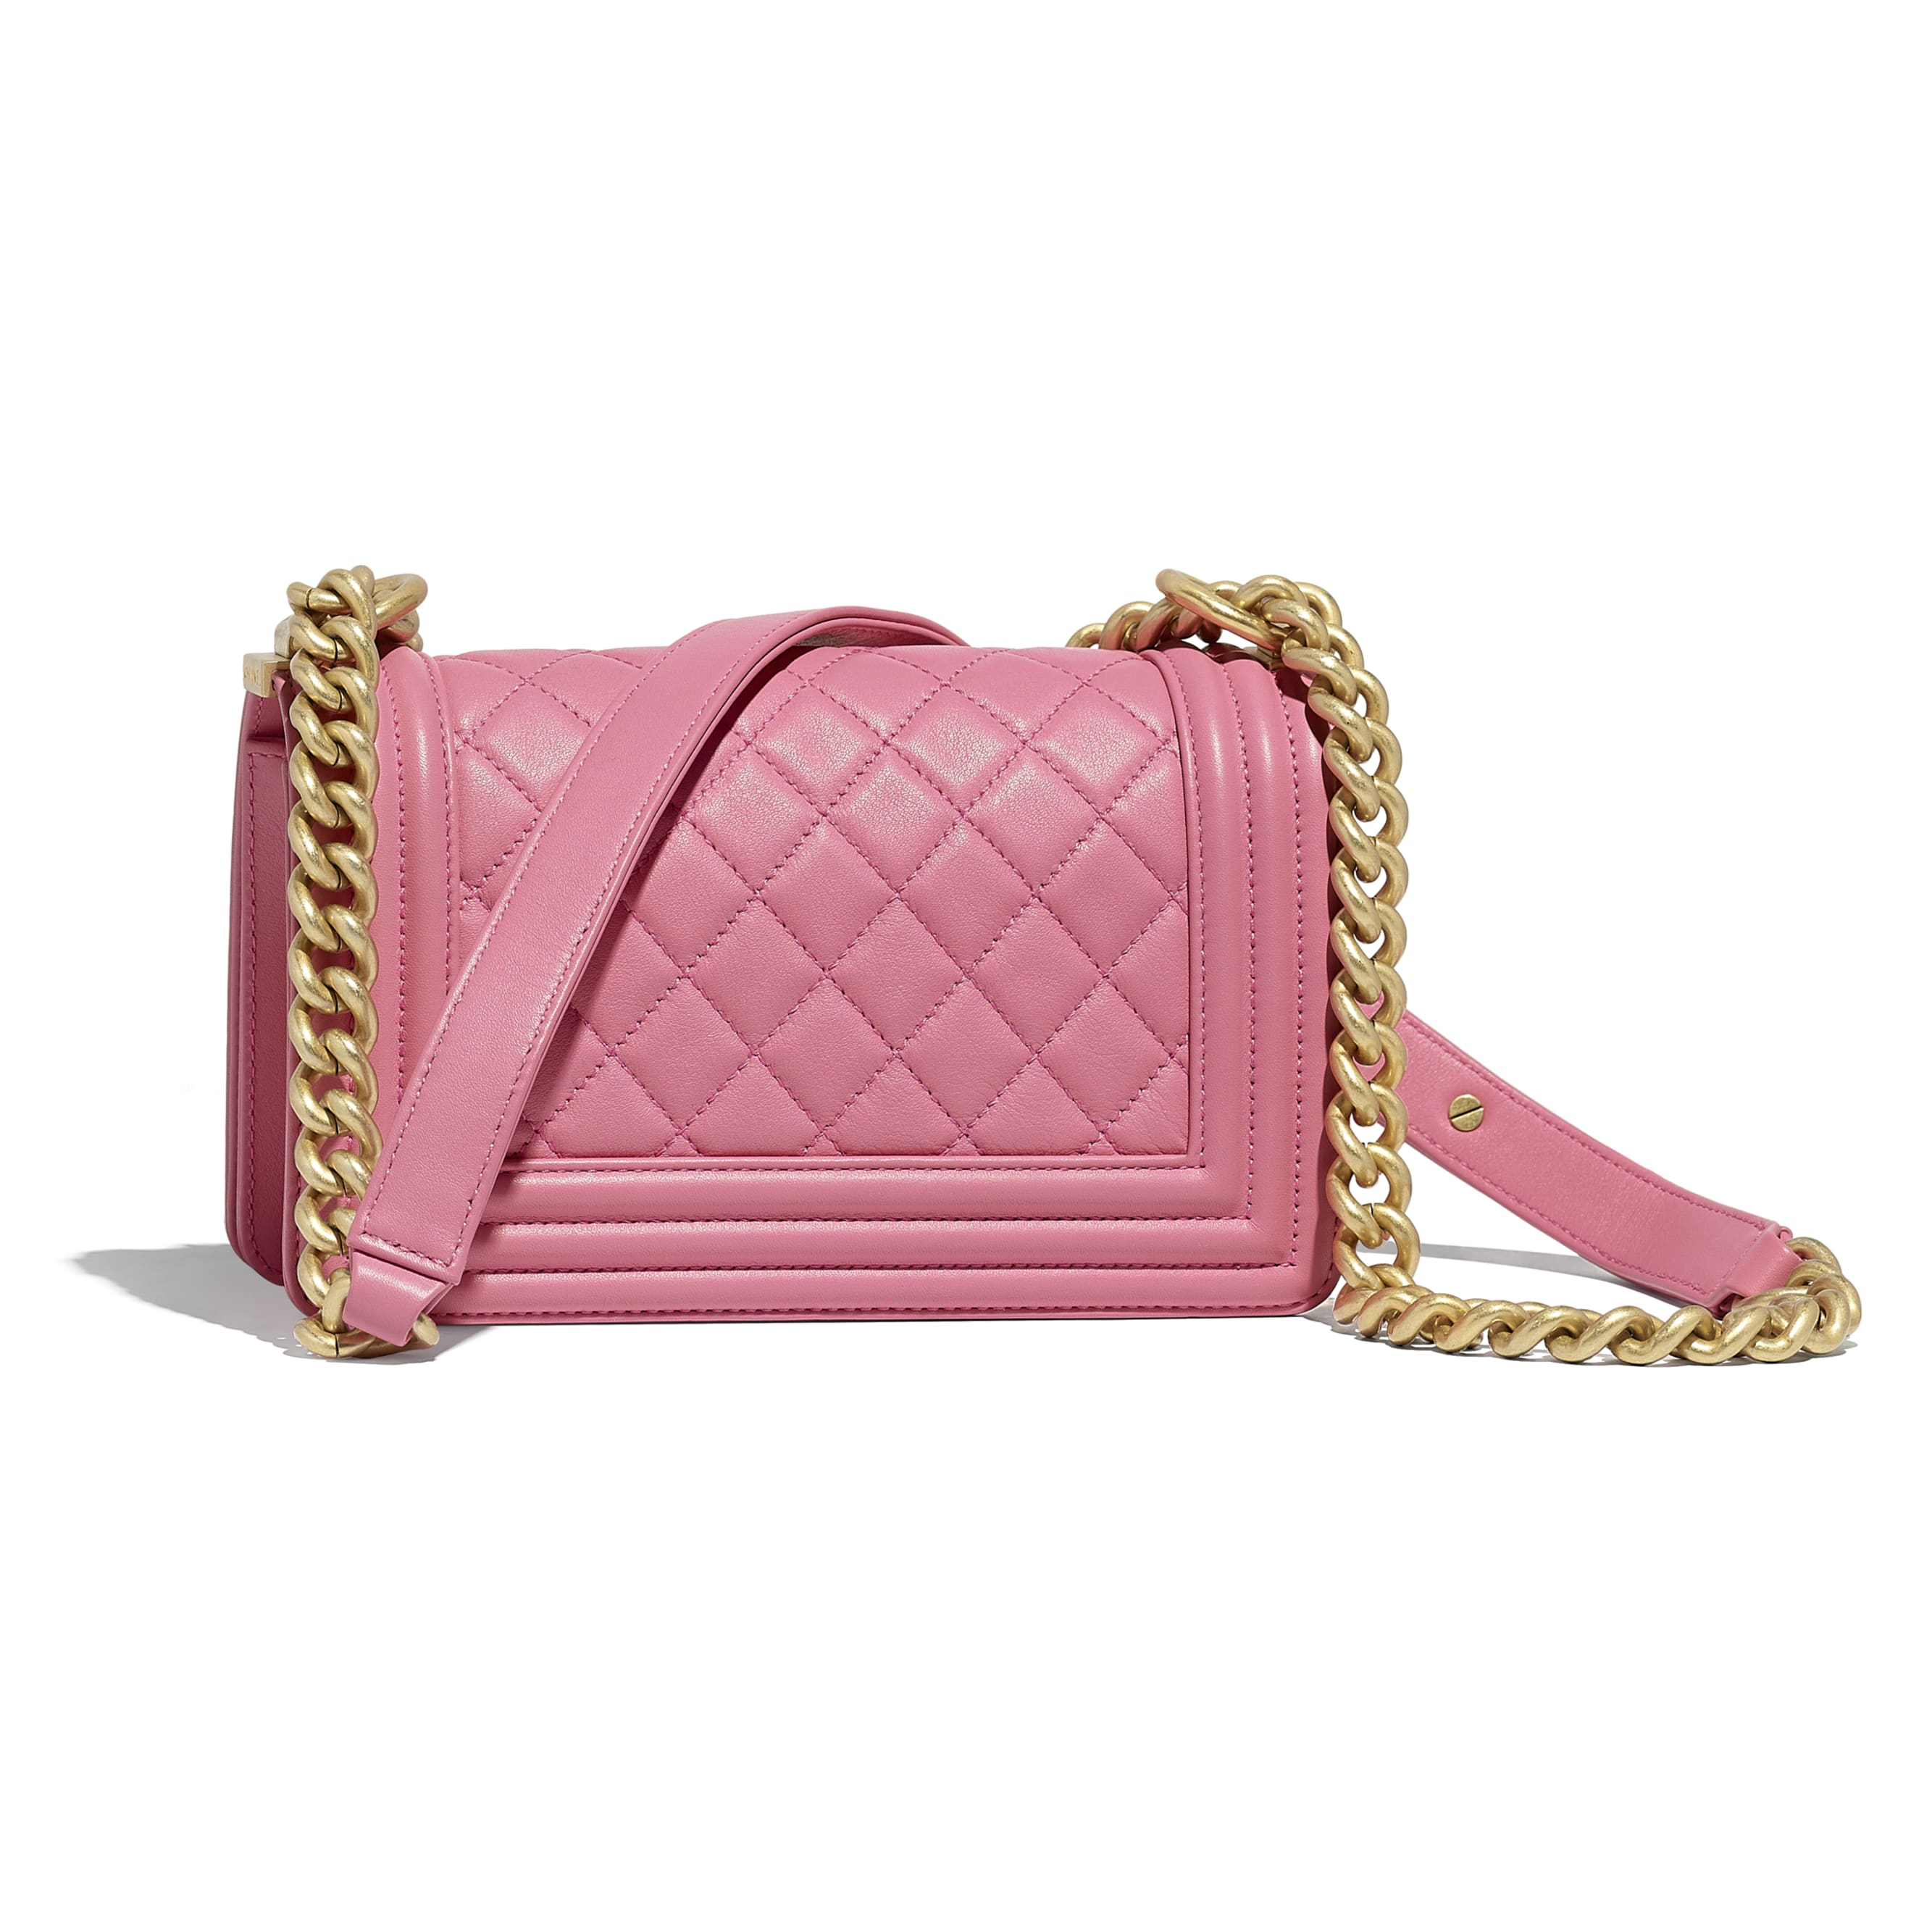 Small BOY CHANEL Handbag - Pink - Calfskin & Gold-Tone Metal - Alternative view - see standard sized version